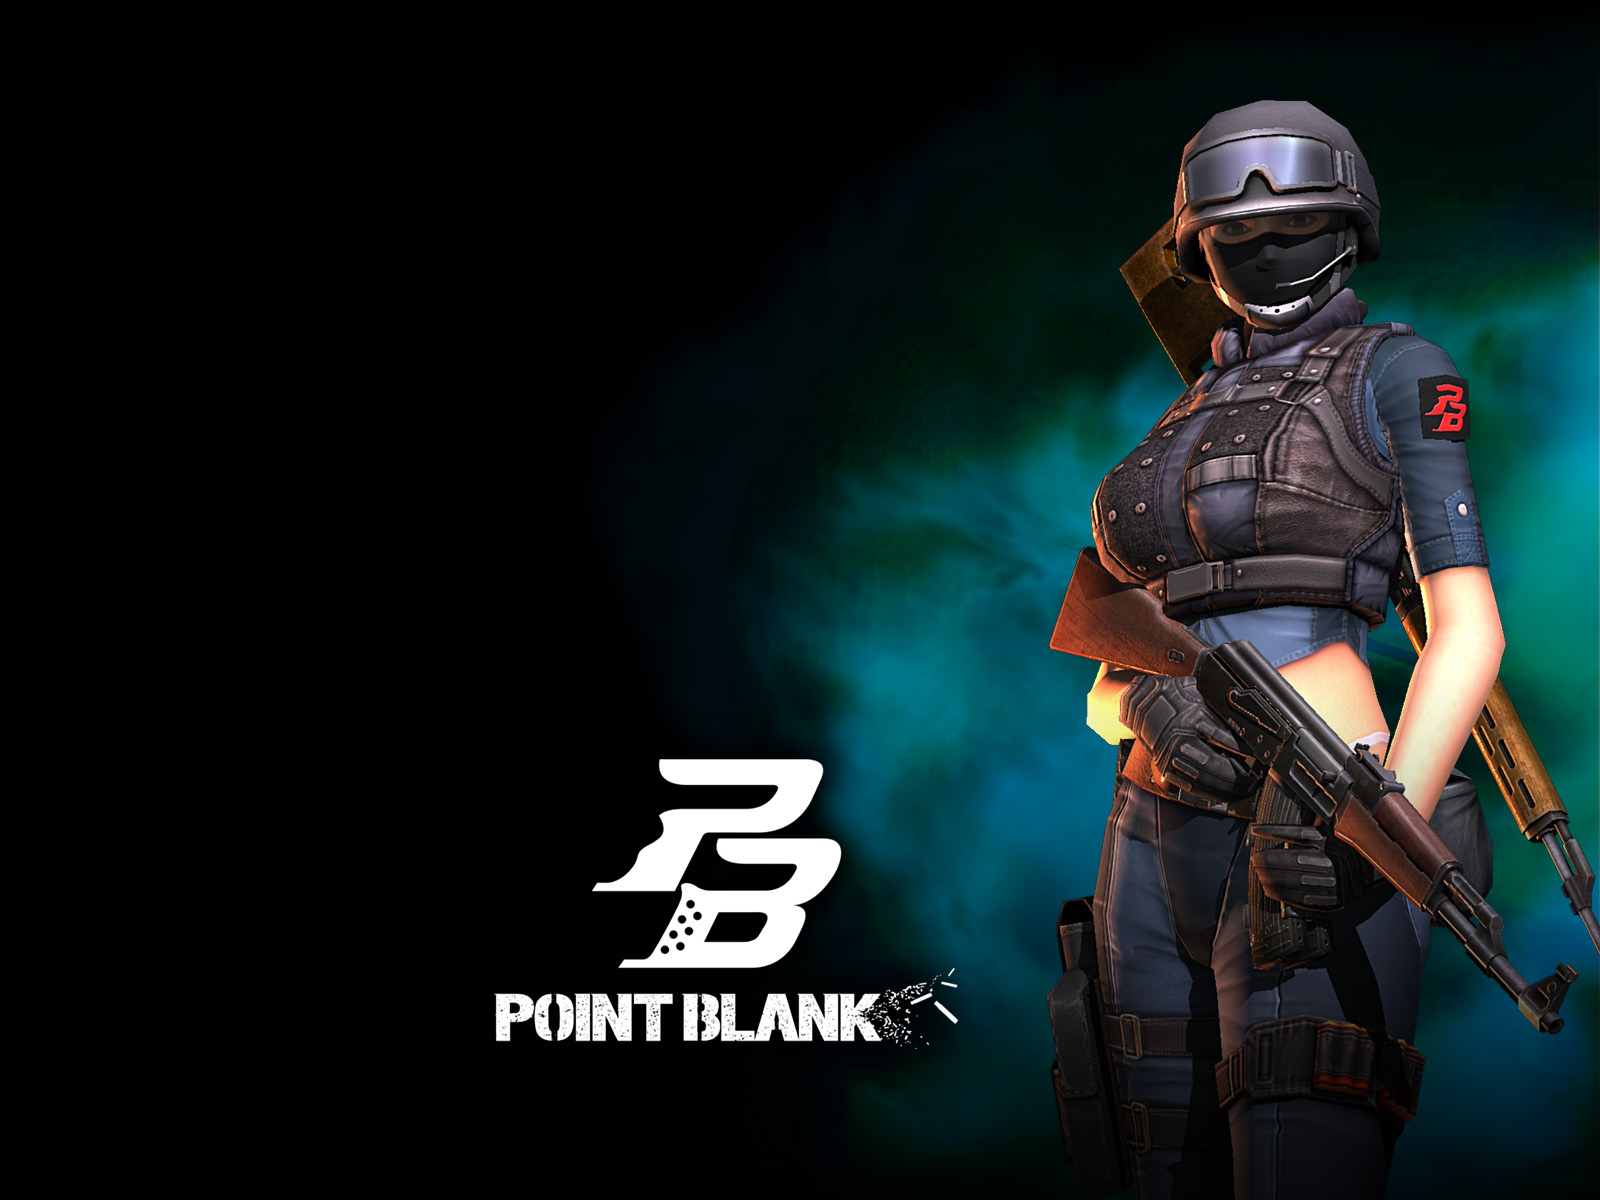 wallpaper point blank games